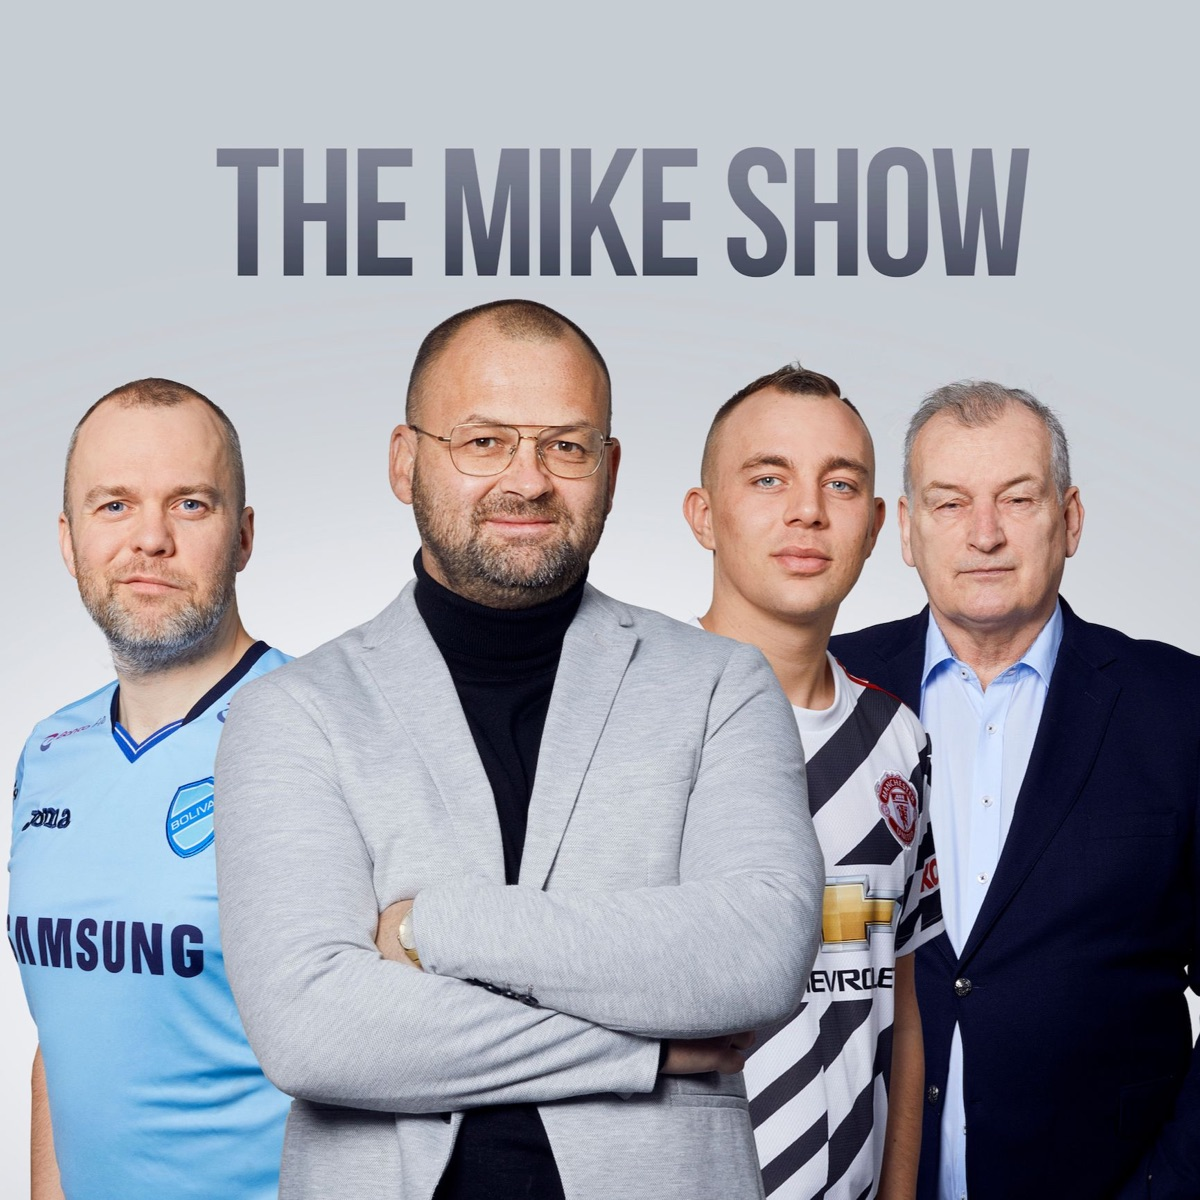 The Mike Show